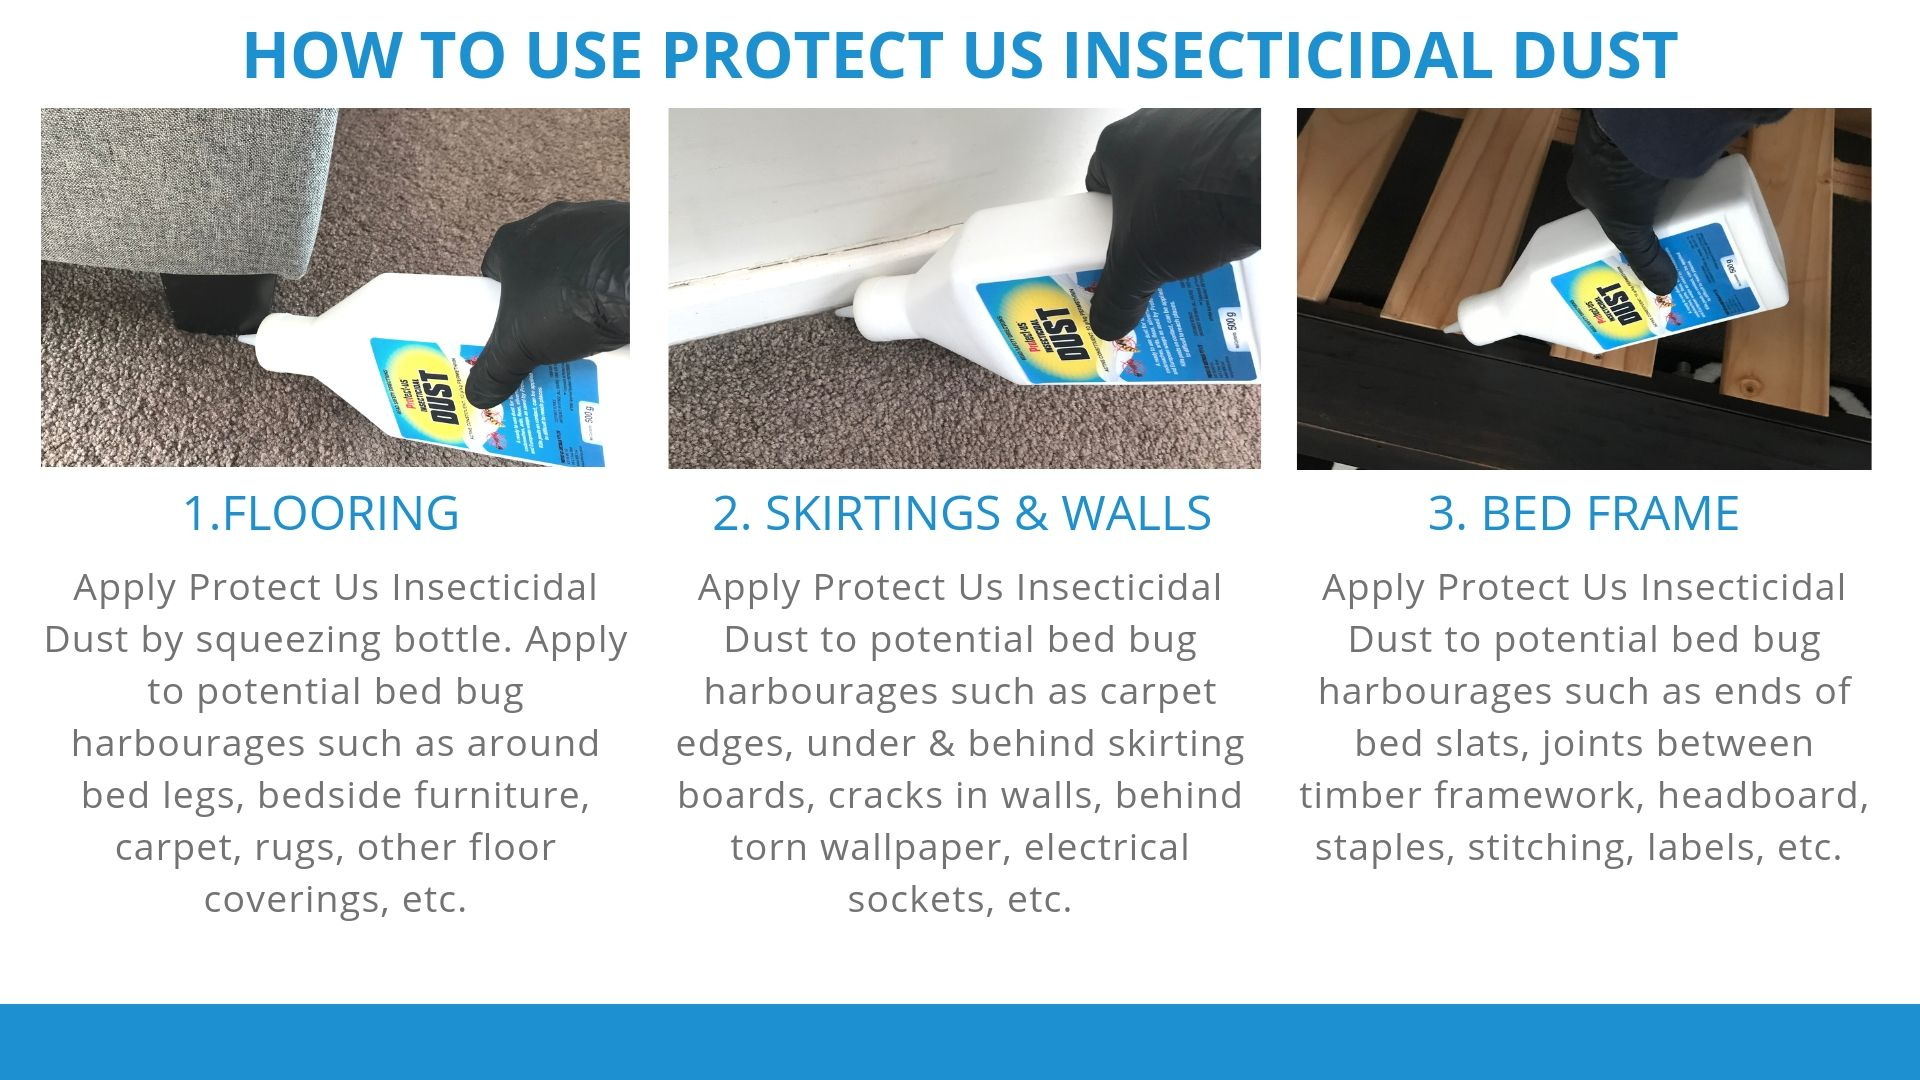 How to use Protect us Insecticidal Dust for Bed Bugs